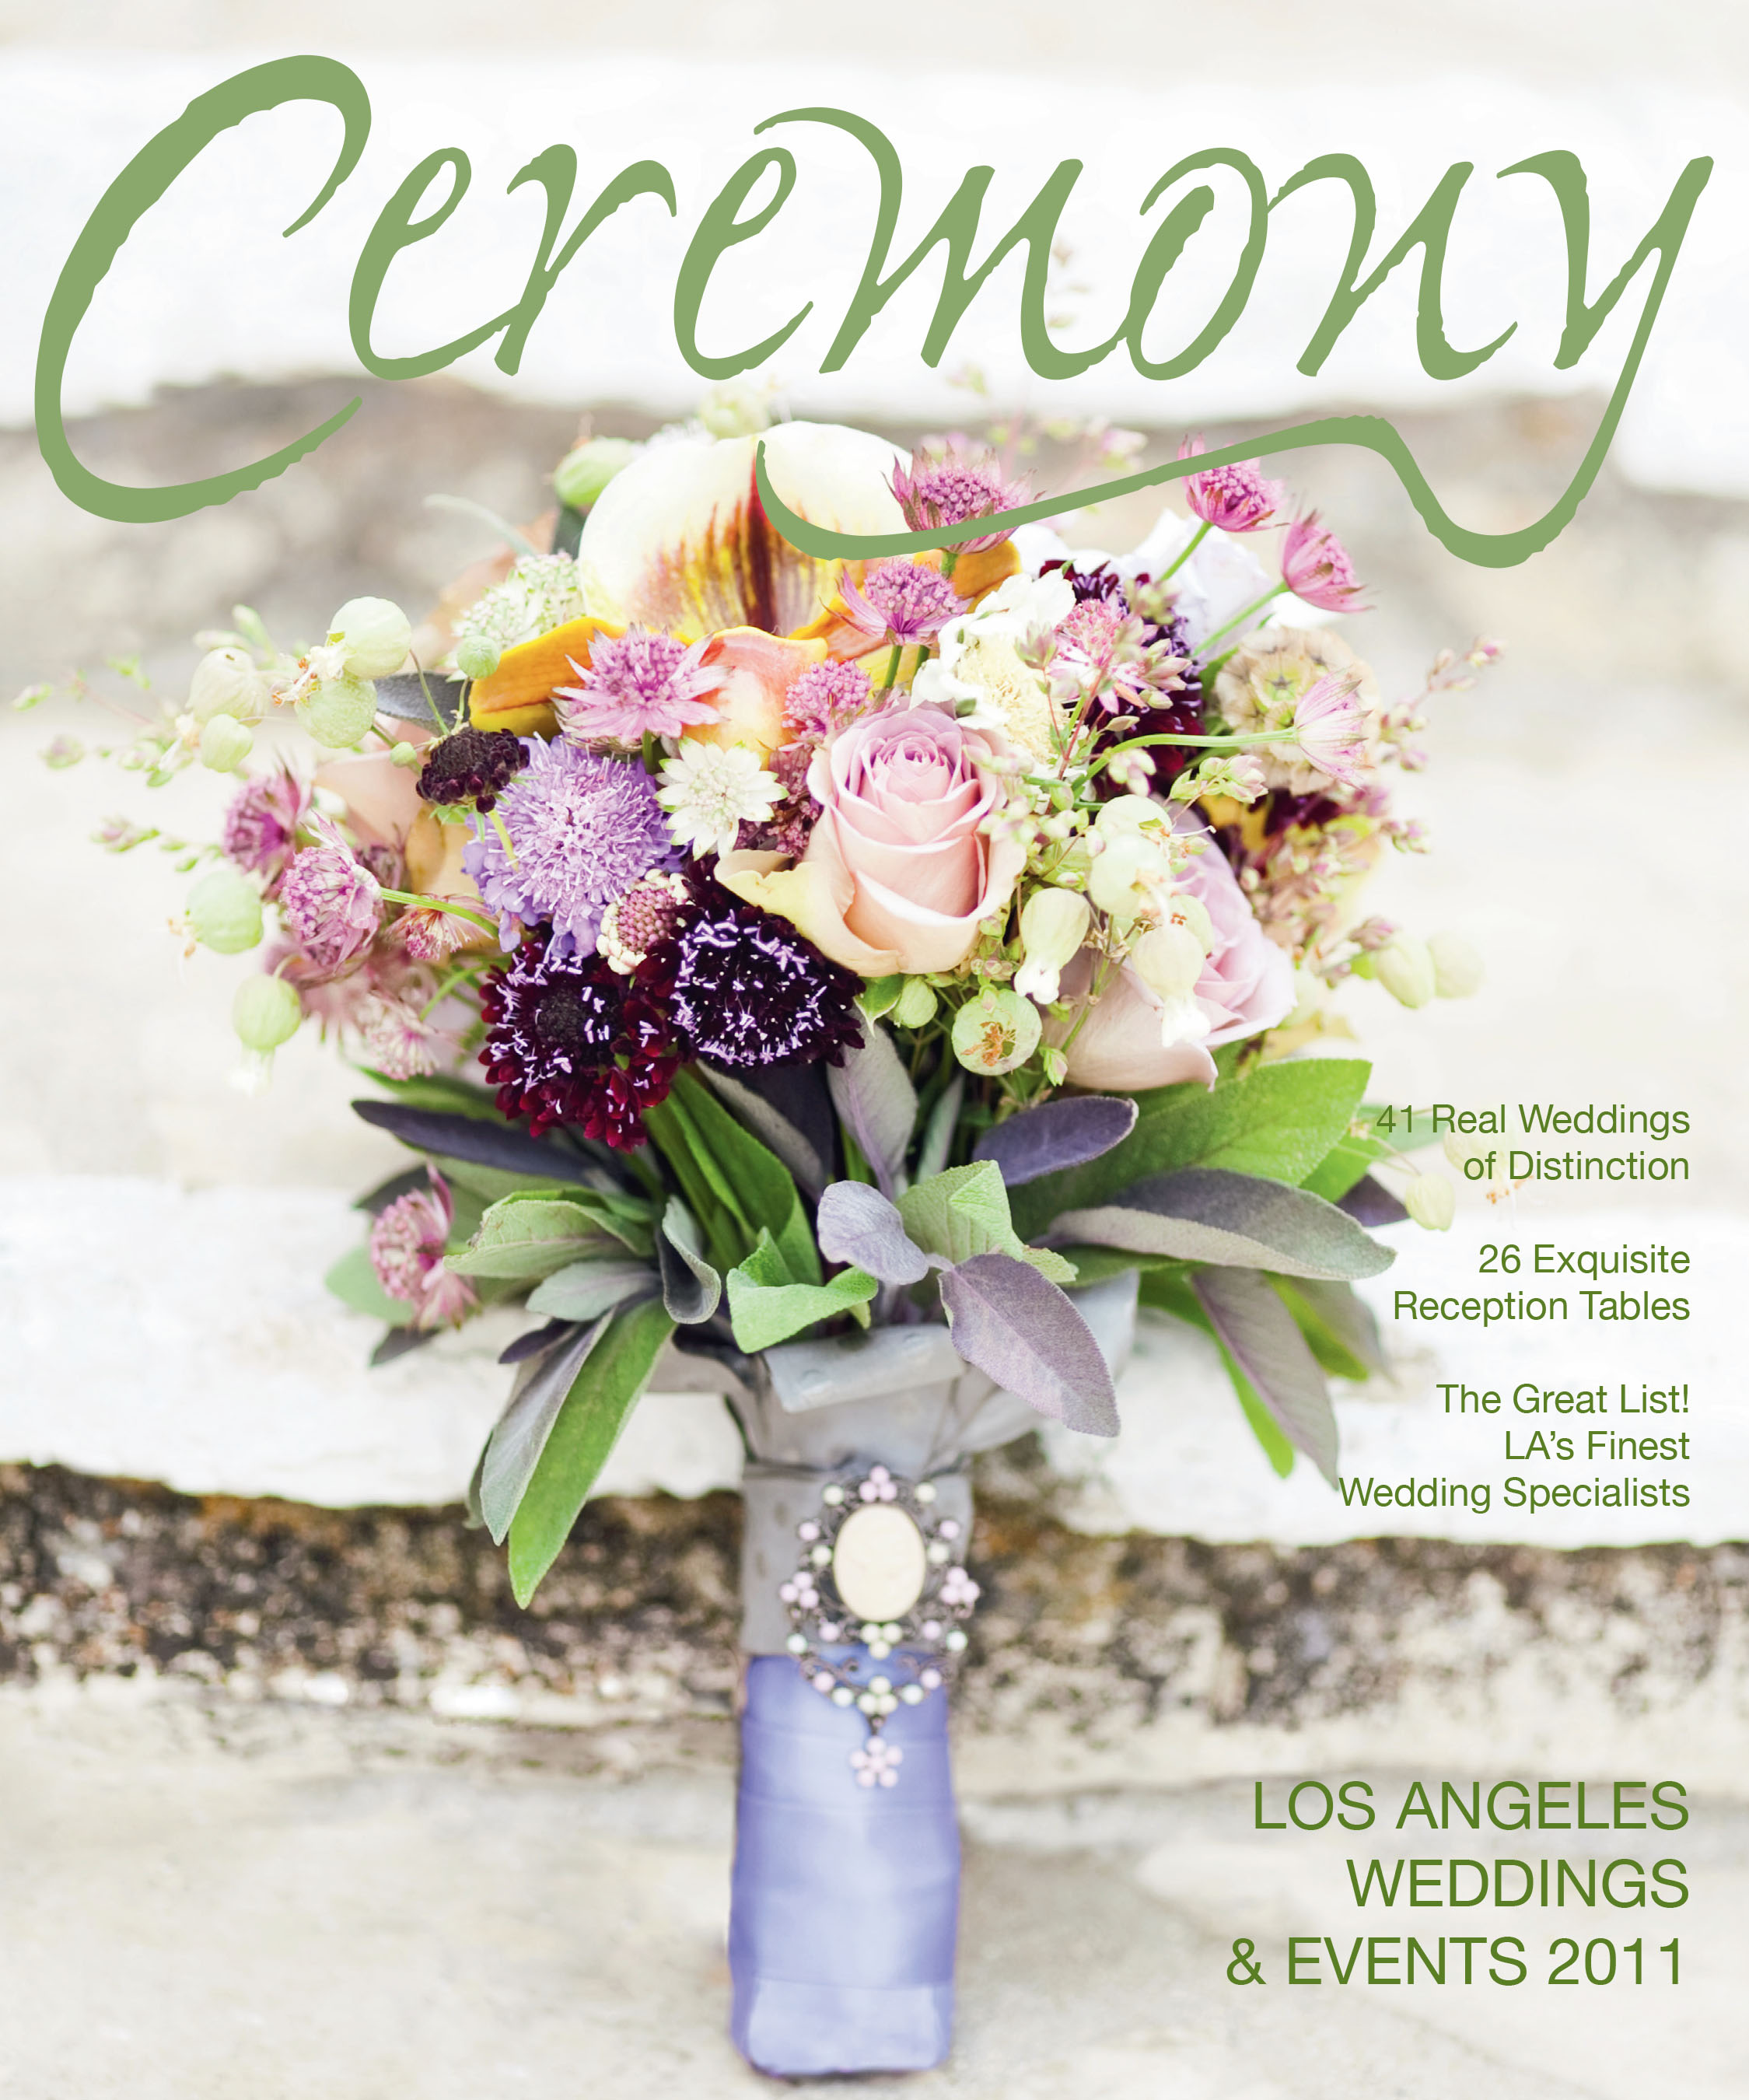 ceremony_LA11-cover